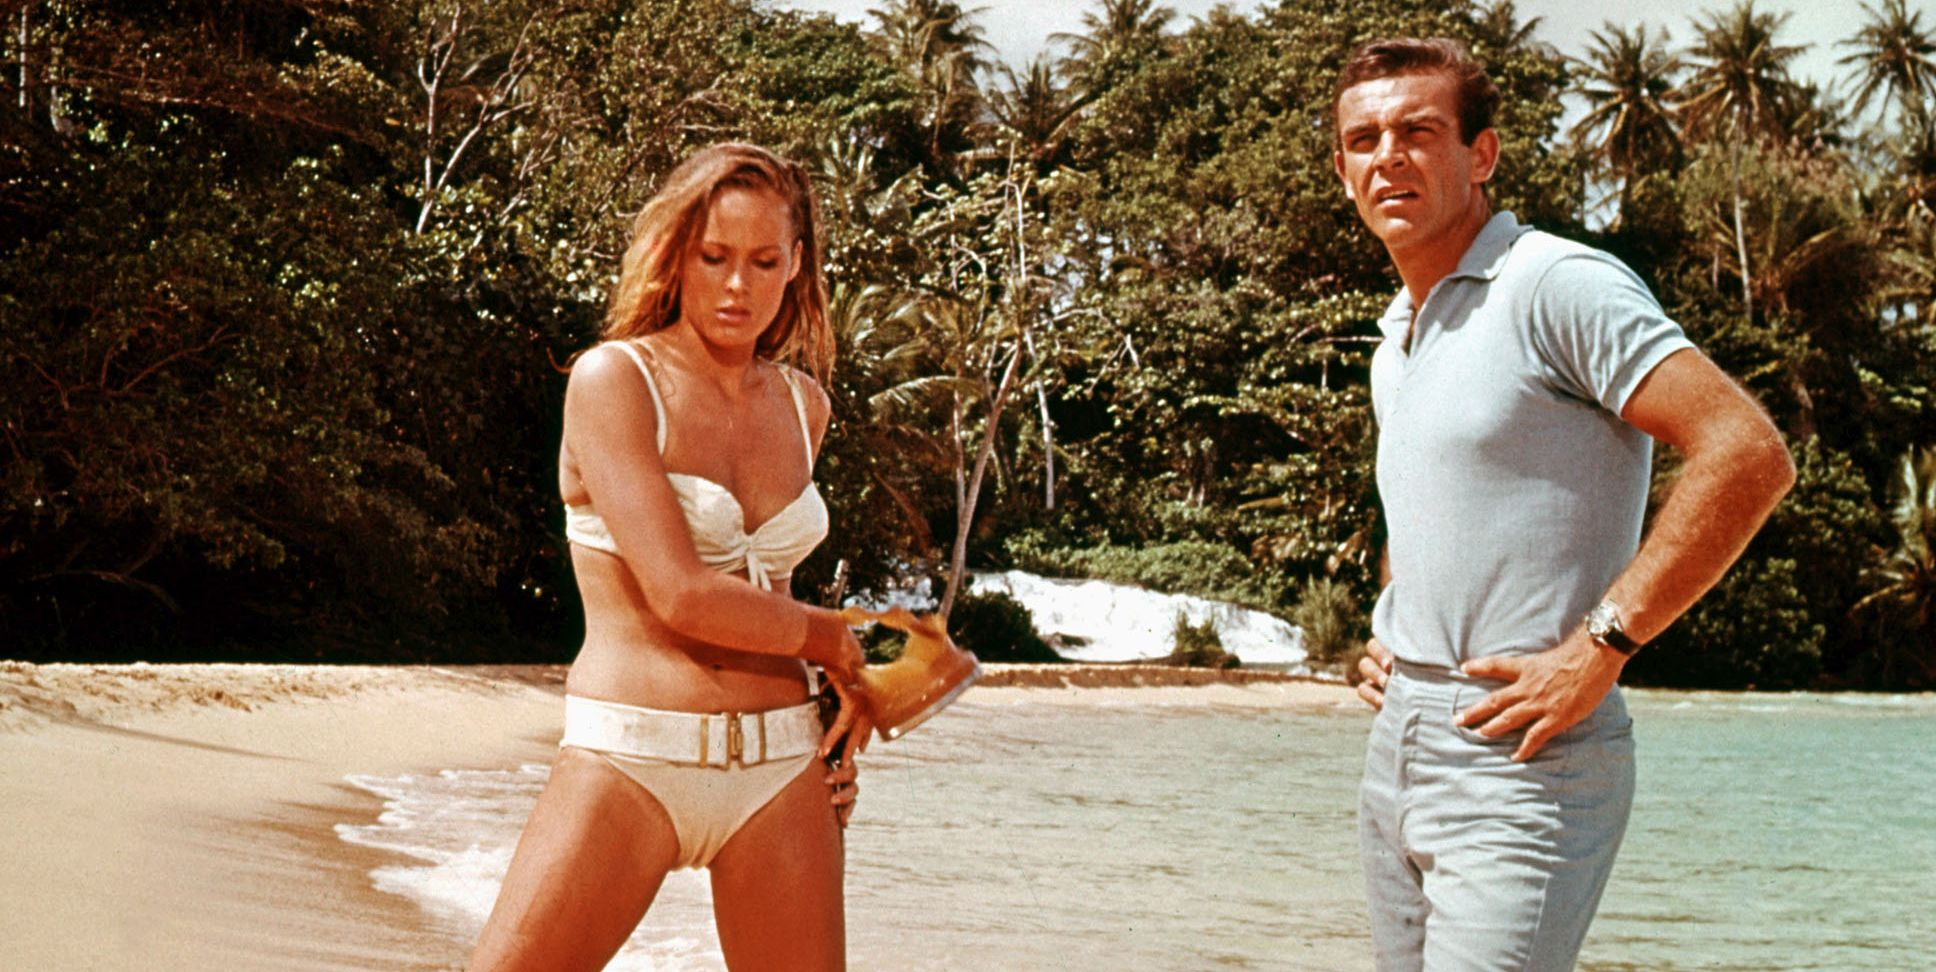 James Bond Behind-the-Scenes: The Photos